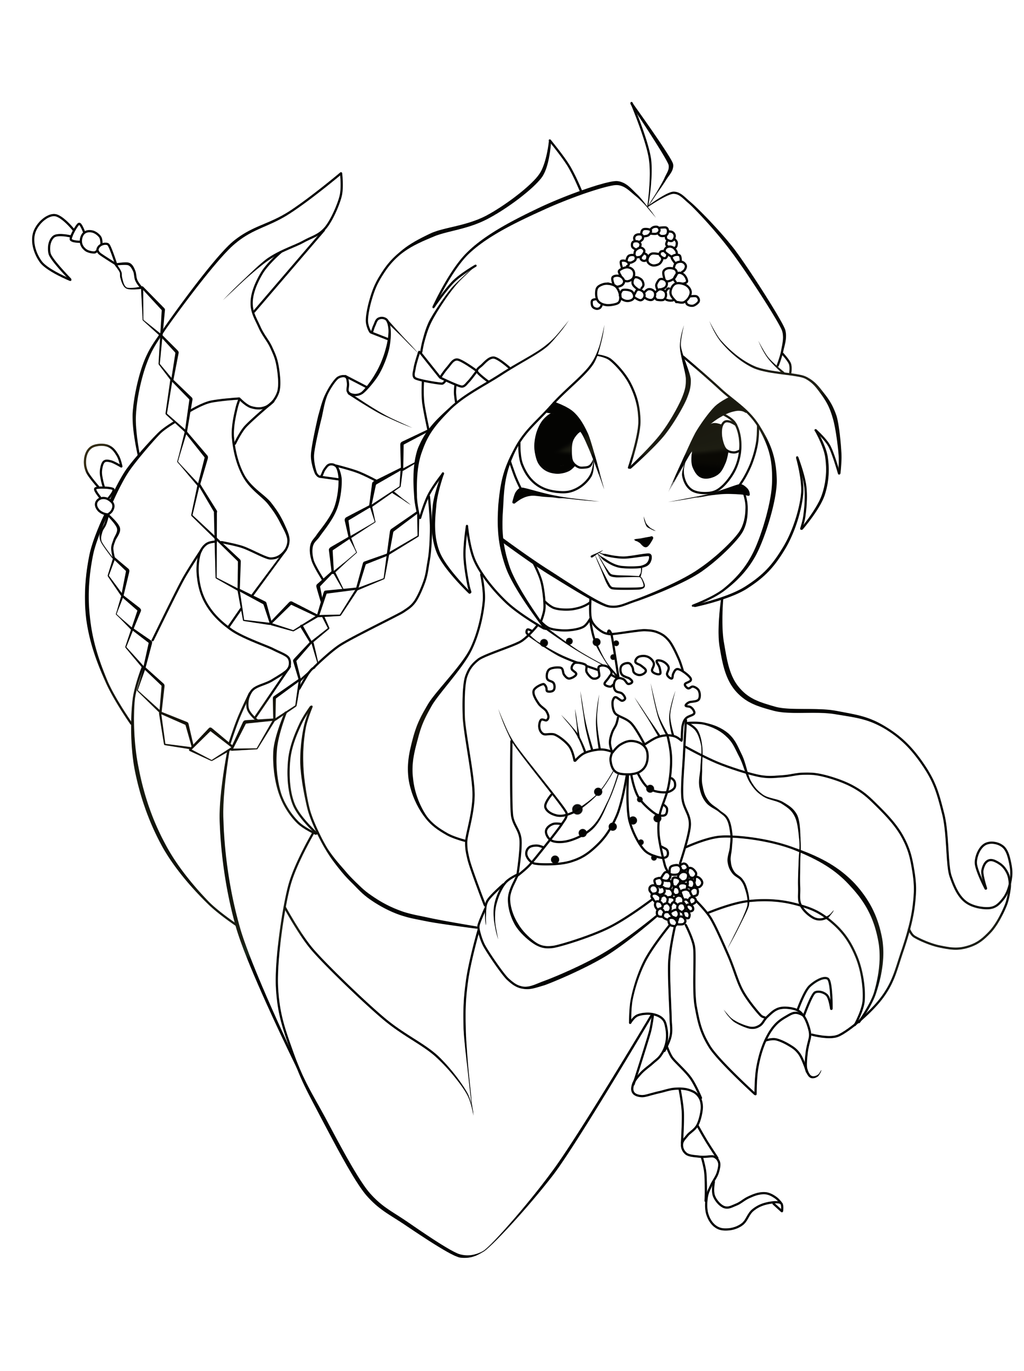 chibi pretty mermaid coloring pages - photo#5